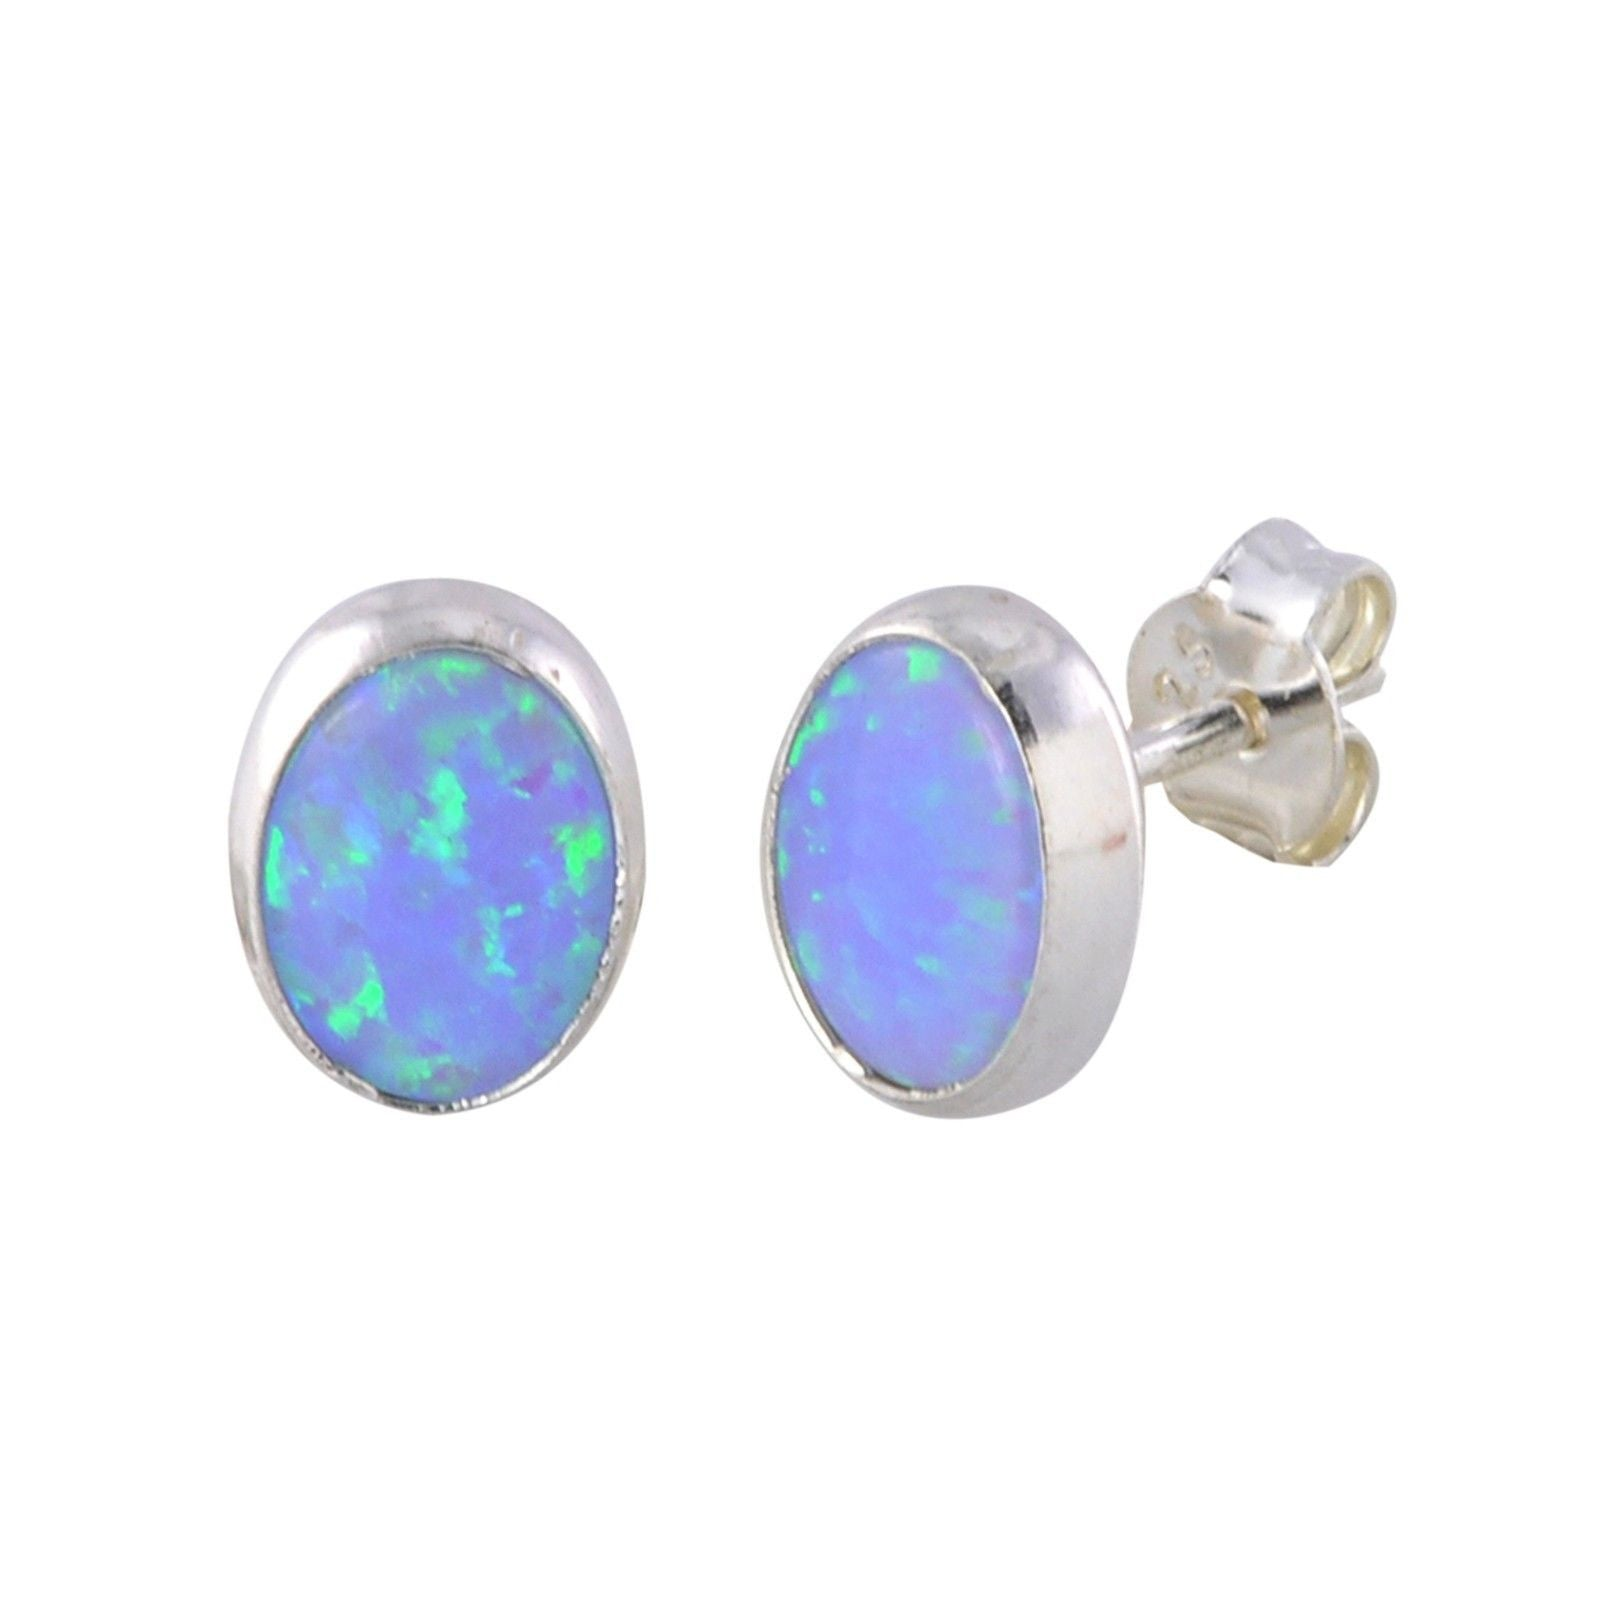 prev upal opal product certified natural unheated untreated stone ratti loose lab gemstone carat